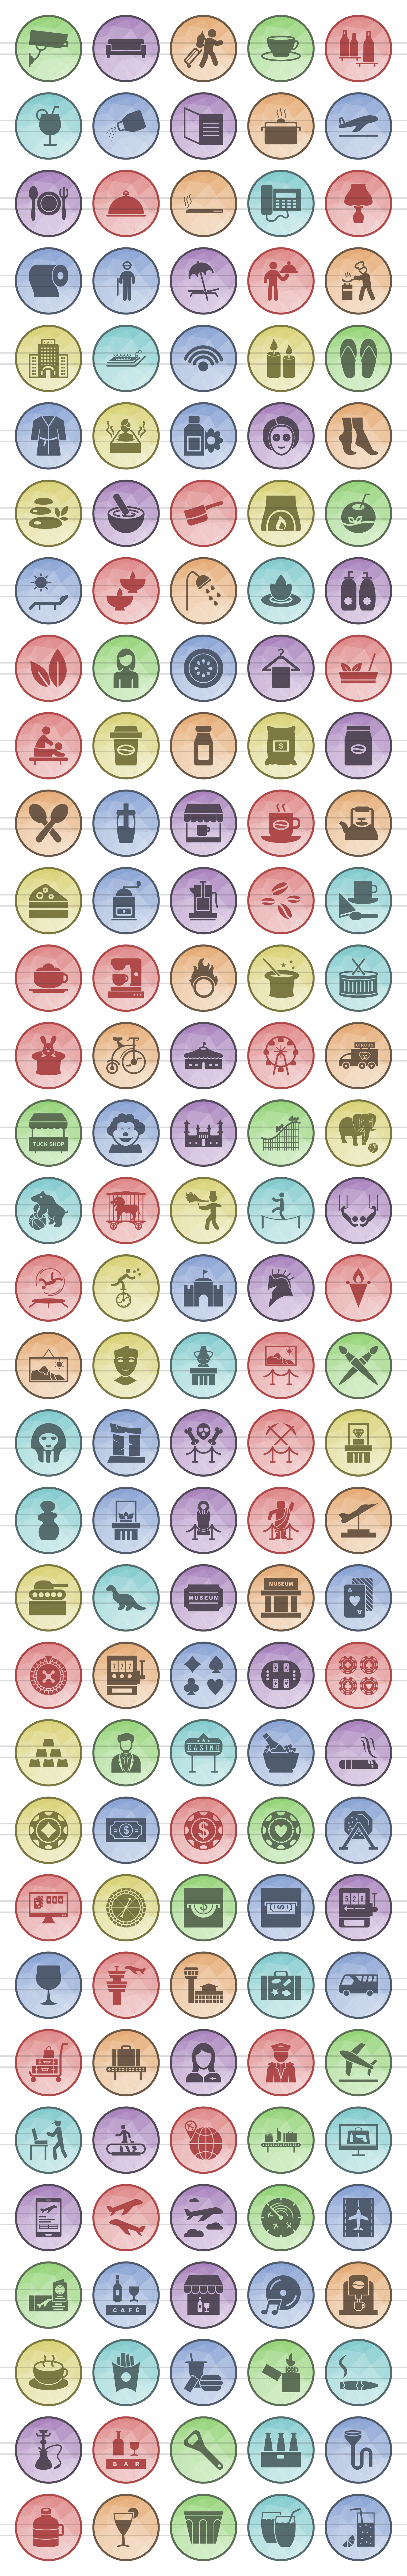 166 Places Filled Low Poly Icons example image 2